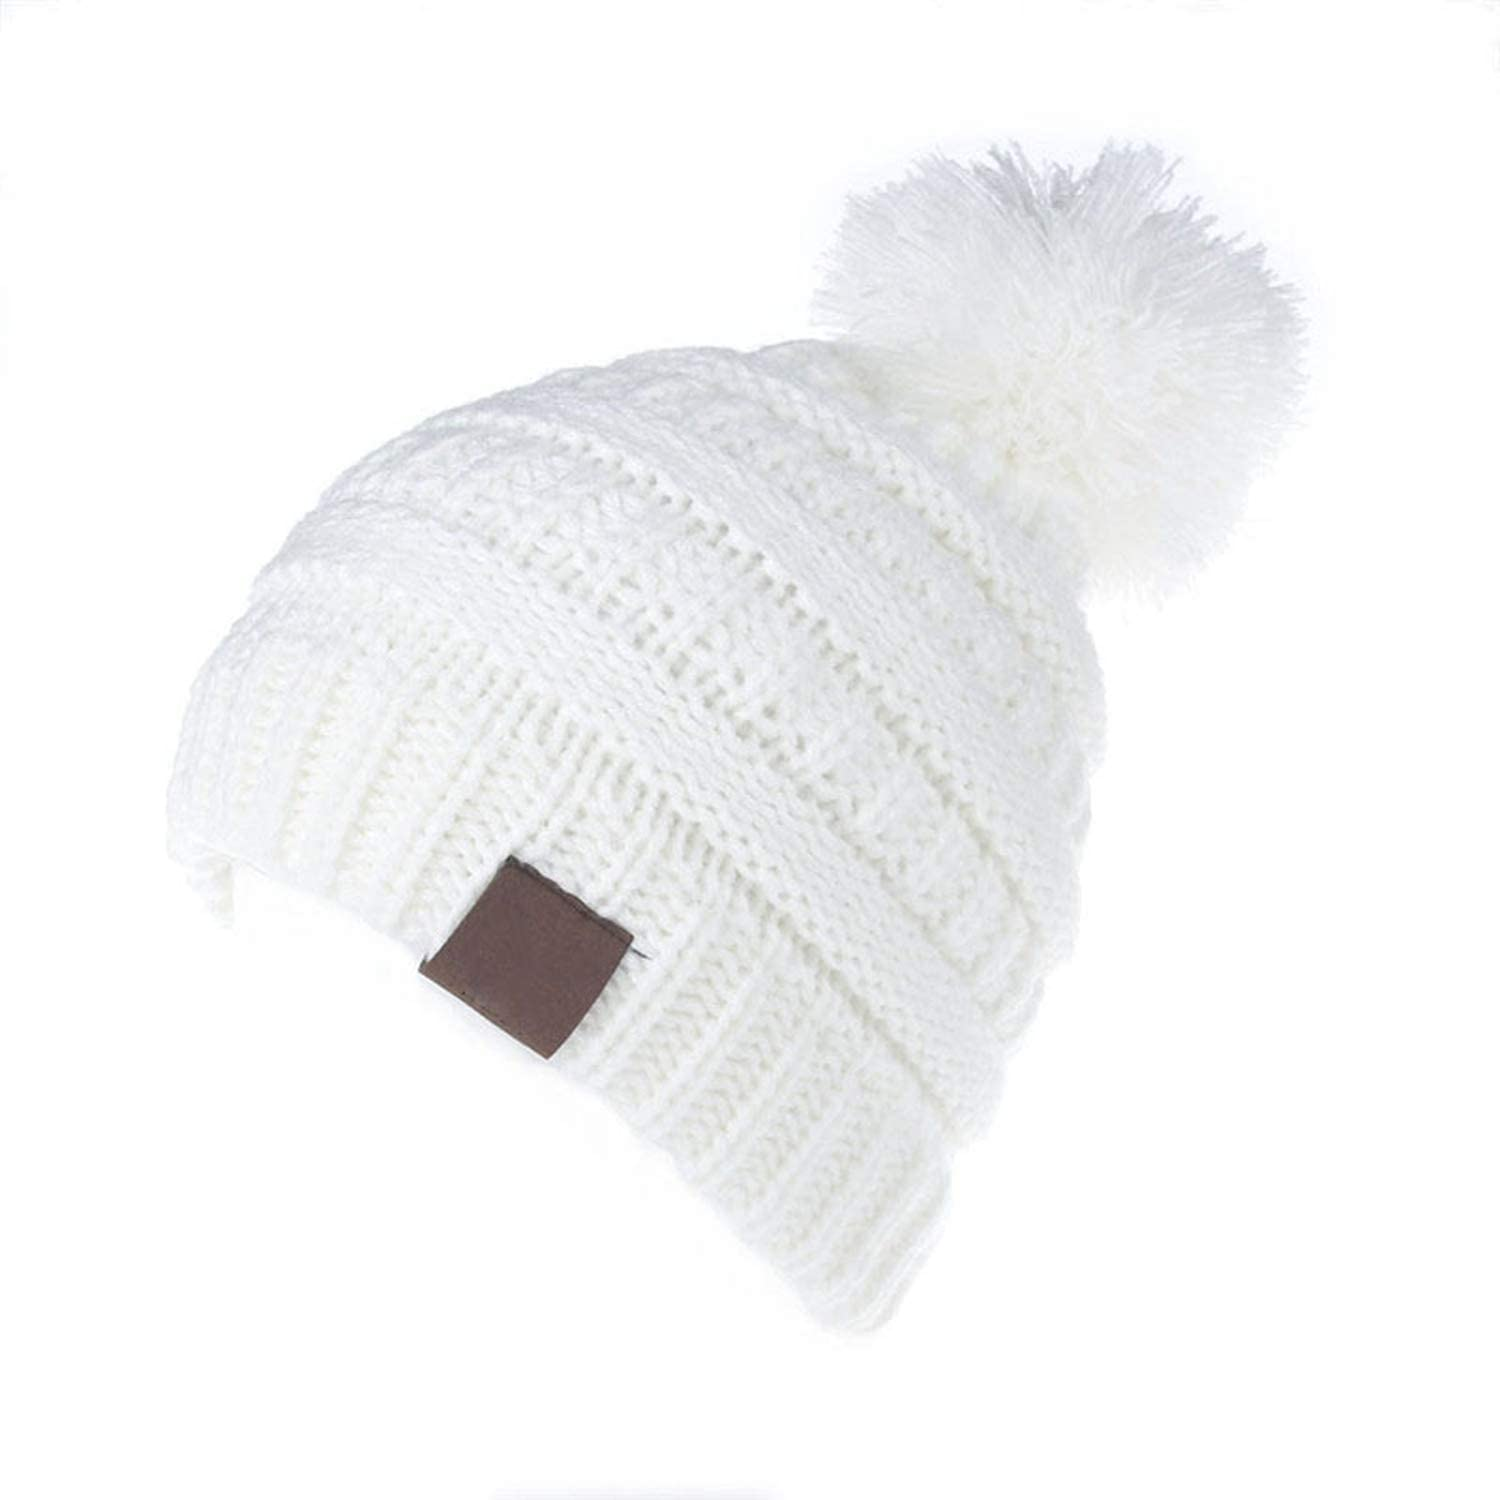 XINBONG 2-6 Years Children Knitted Pom Pom Hat for Baby Boys Girls Caps Kids Winter Caps Wool Warm Pompom Beanie Hats